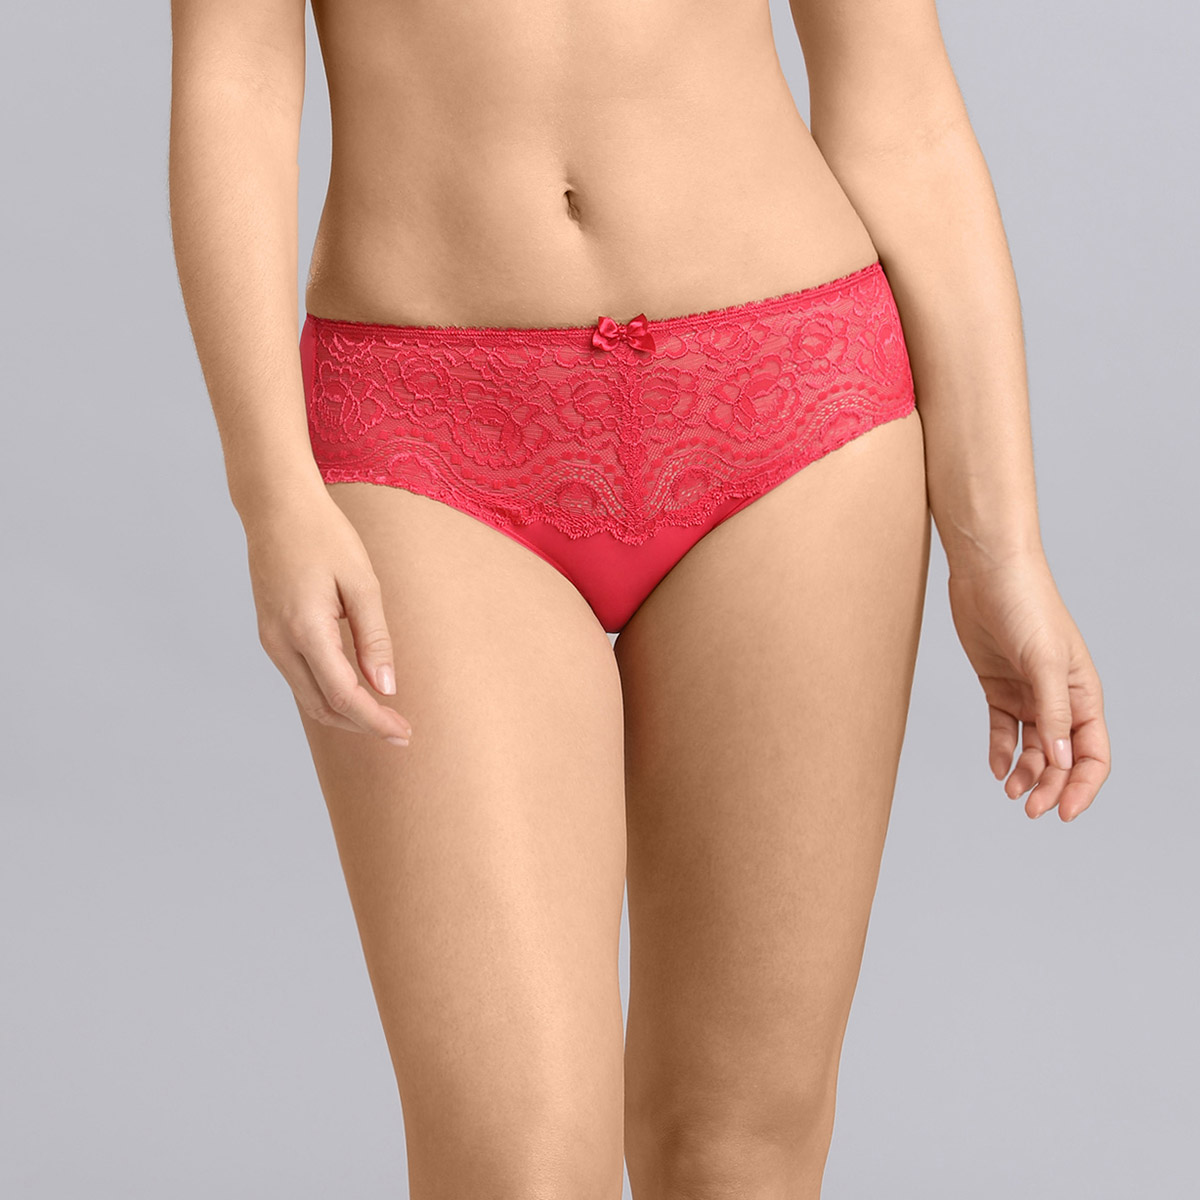 Midi knickers in raspberry Flower Elegance , , PLAYTEX